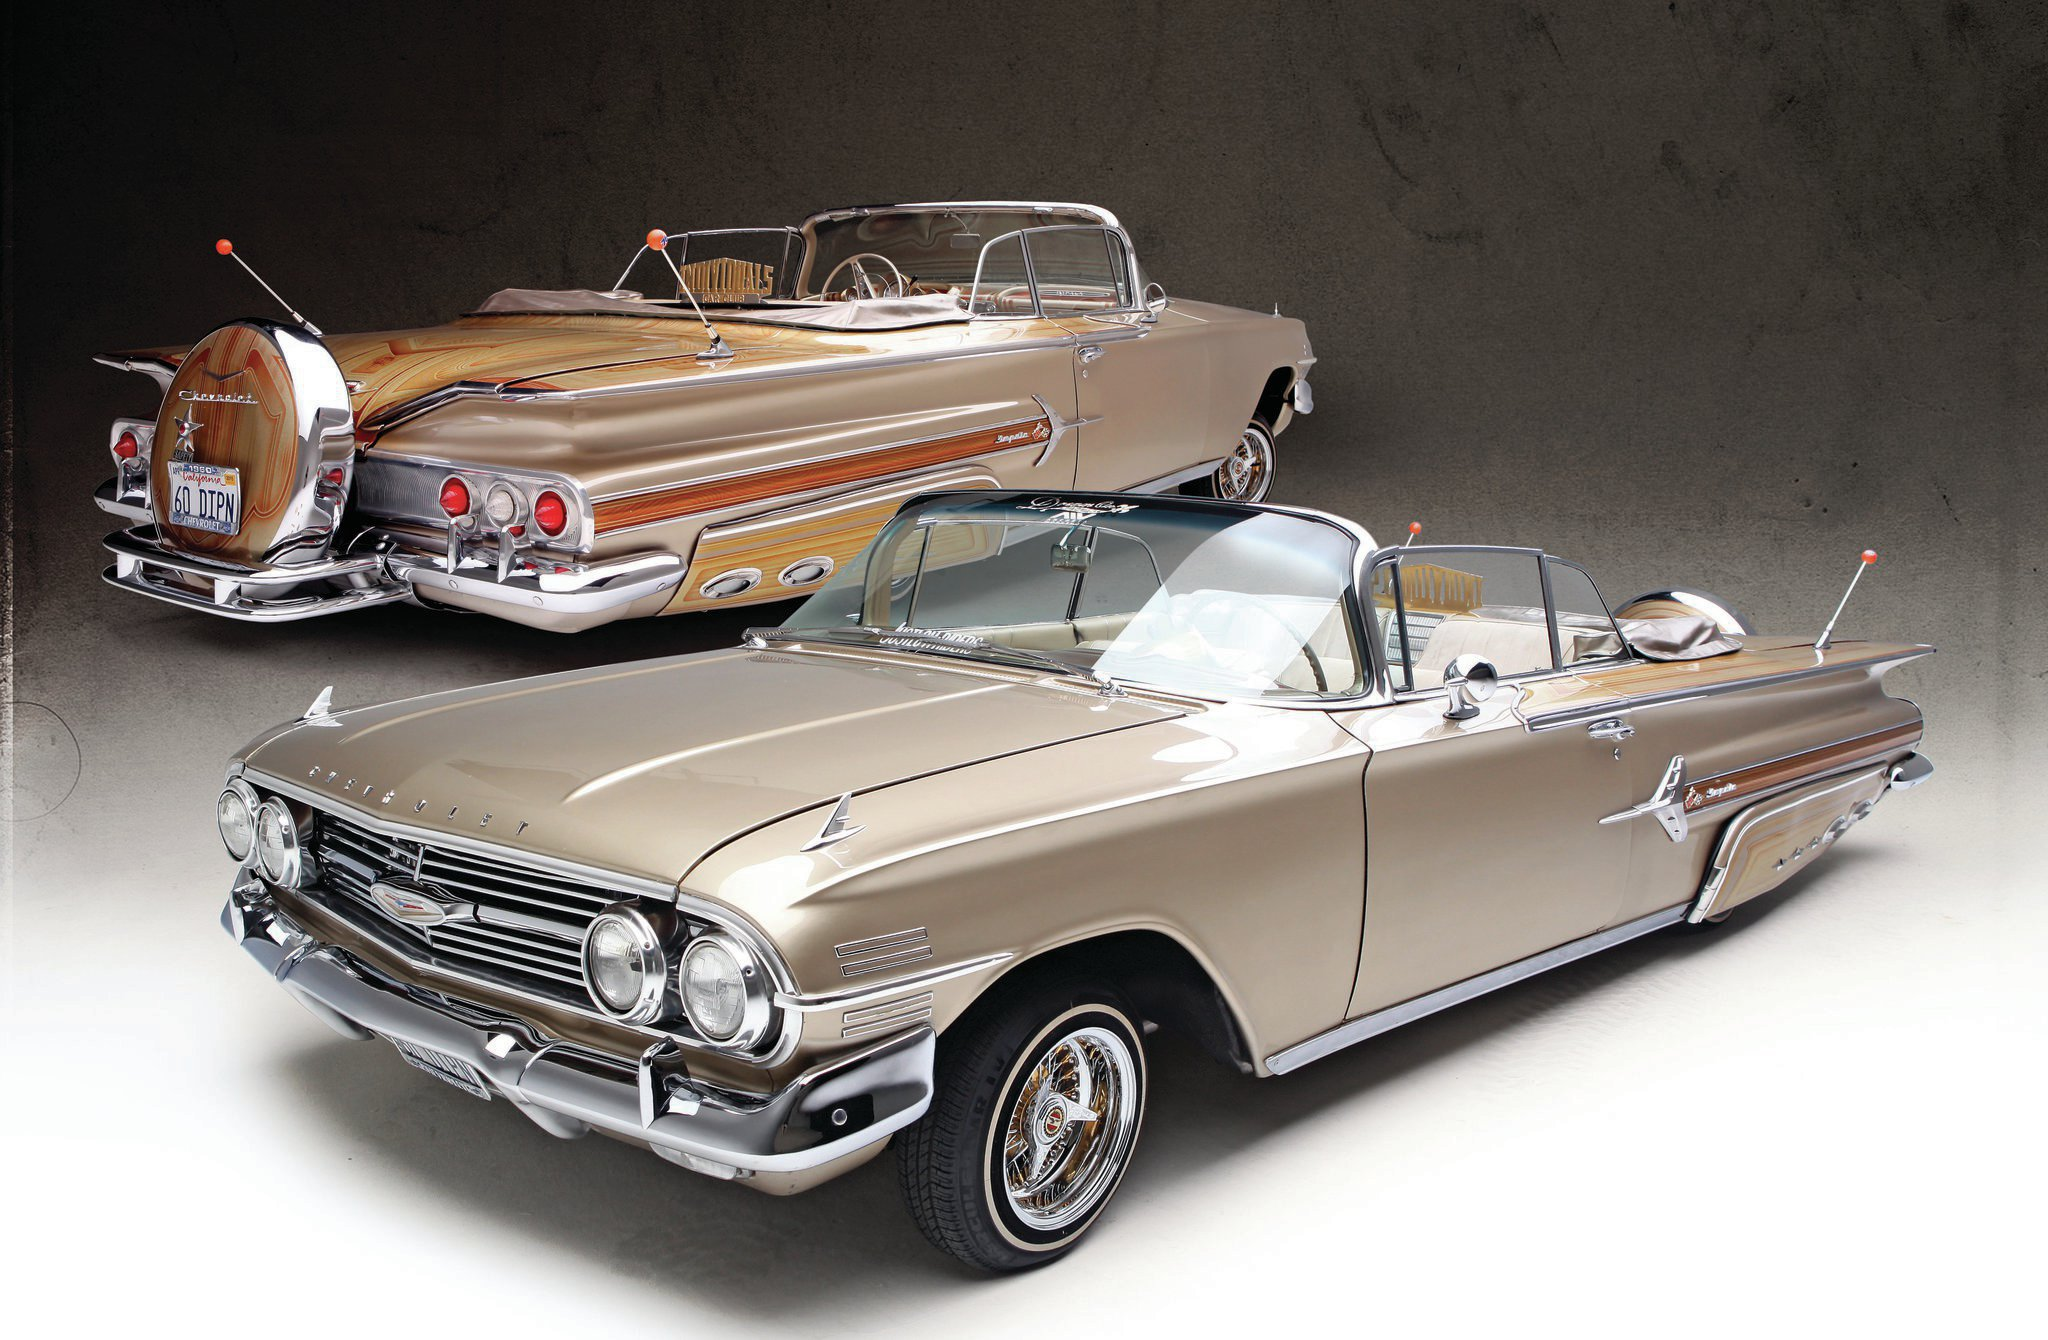 1960 Chevrolet Impala Convertible One Lucky Individual